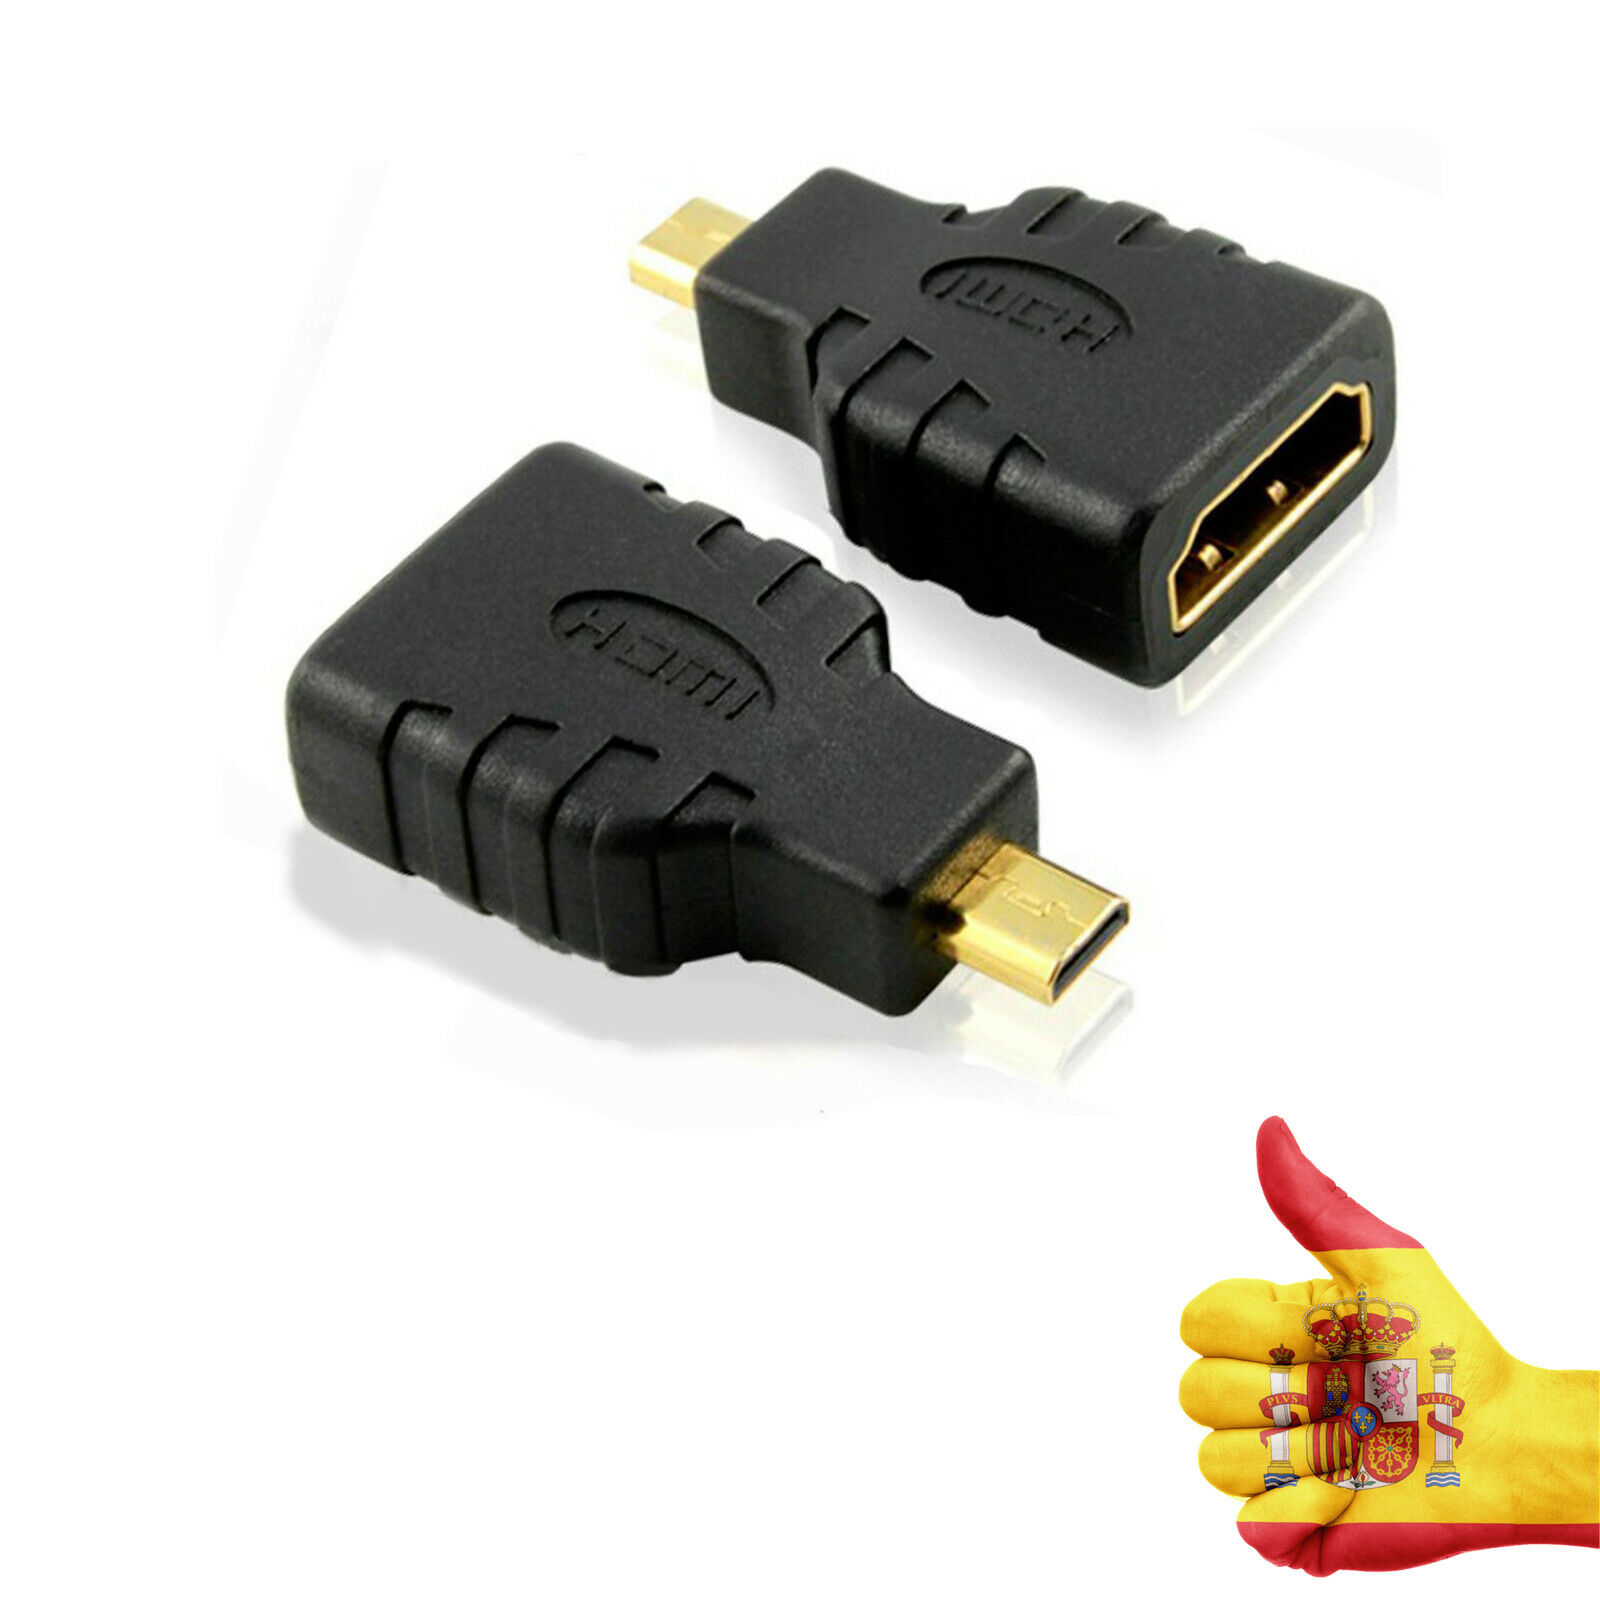 Micro HDMI Type D To HDMI Female Converters Plug Adapter Cable For Microsoft Surface RT Extender 1080 P HDTV